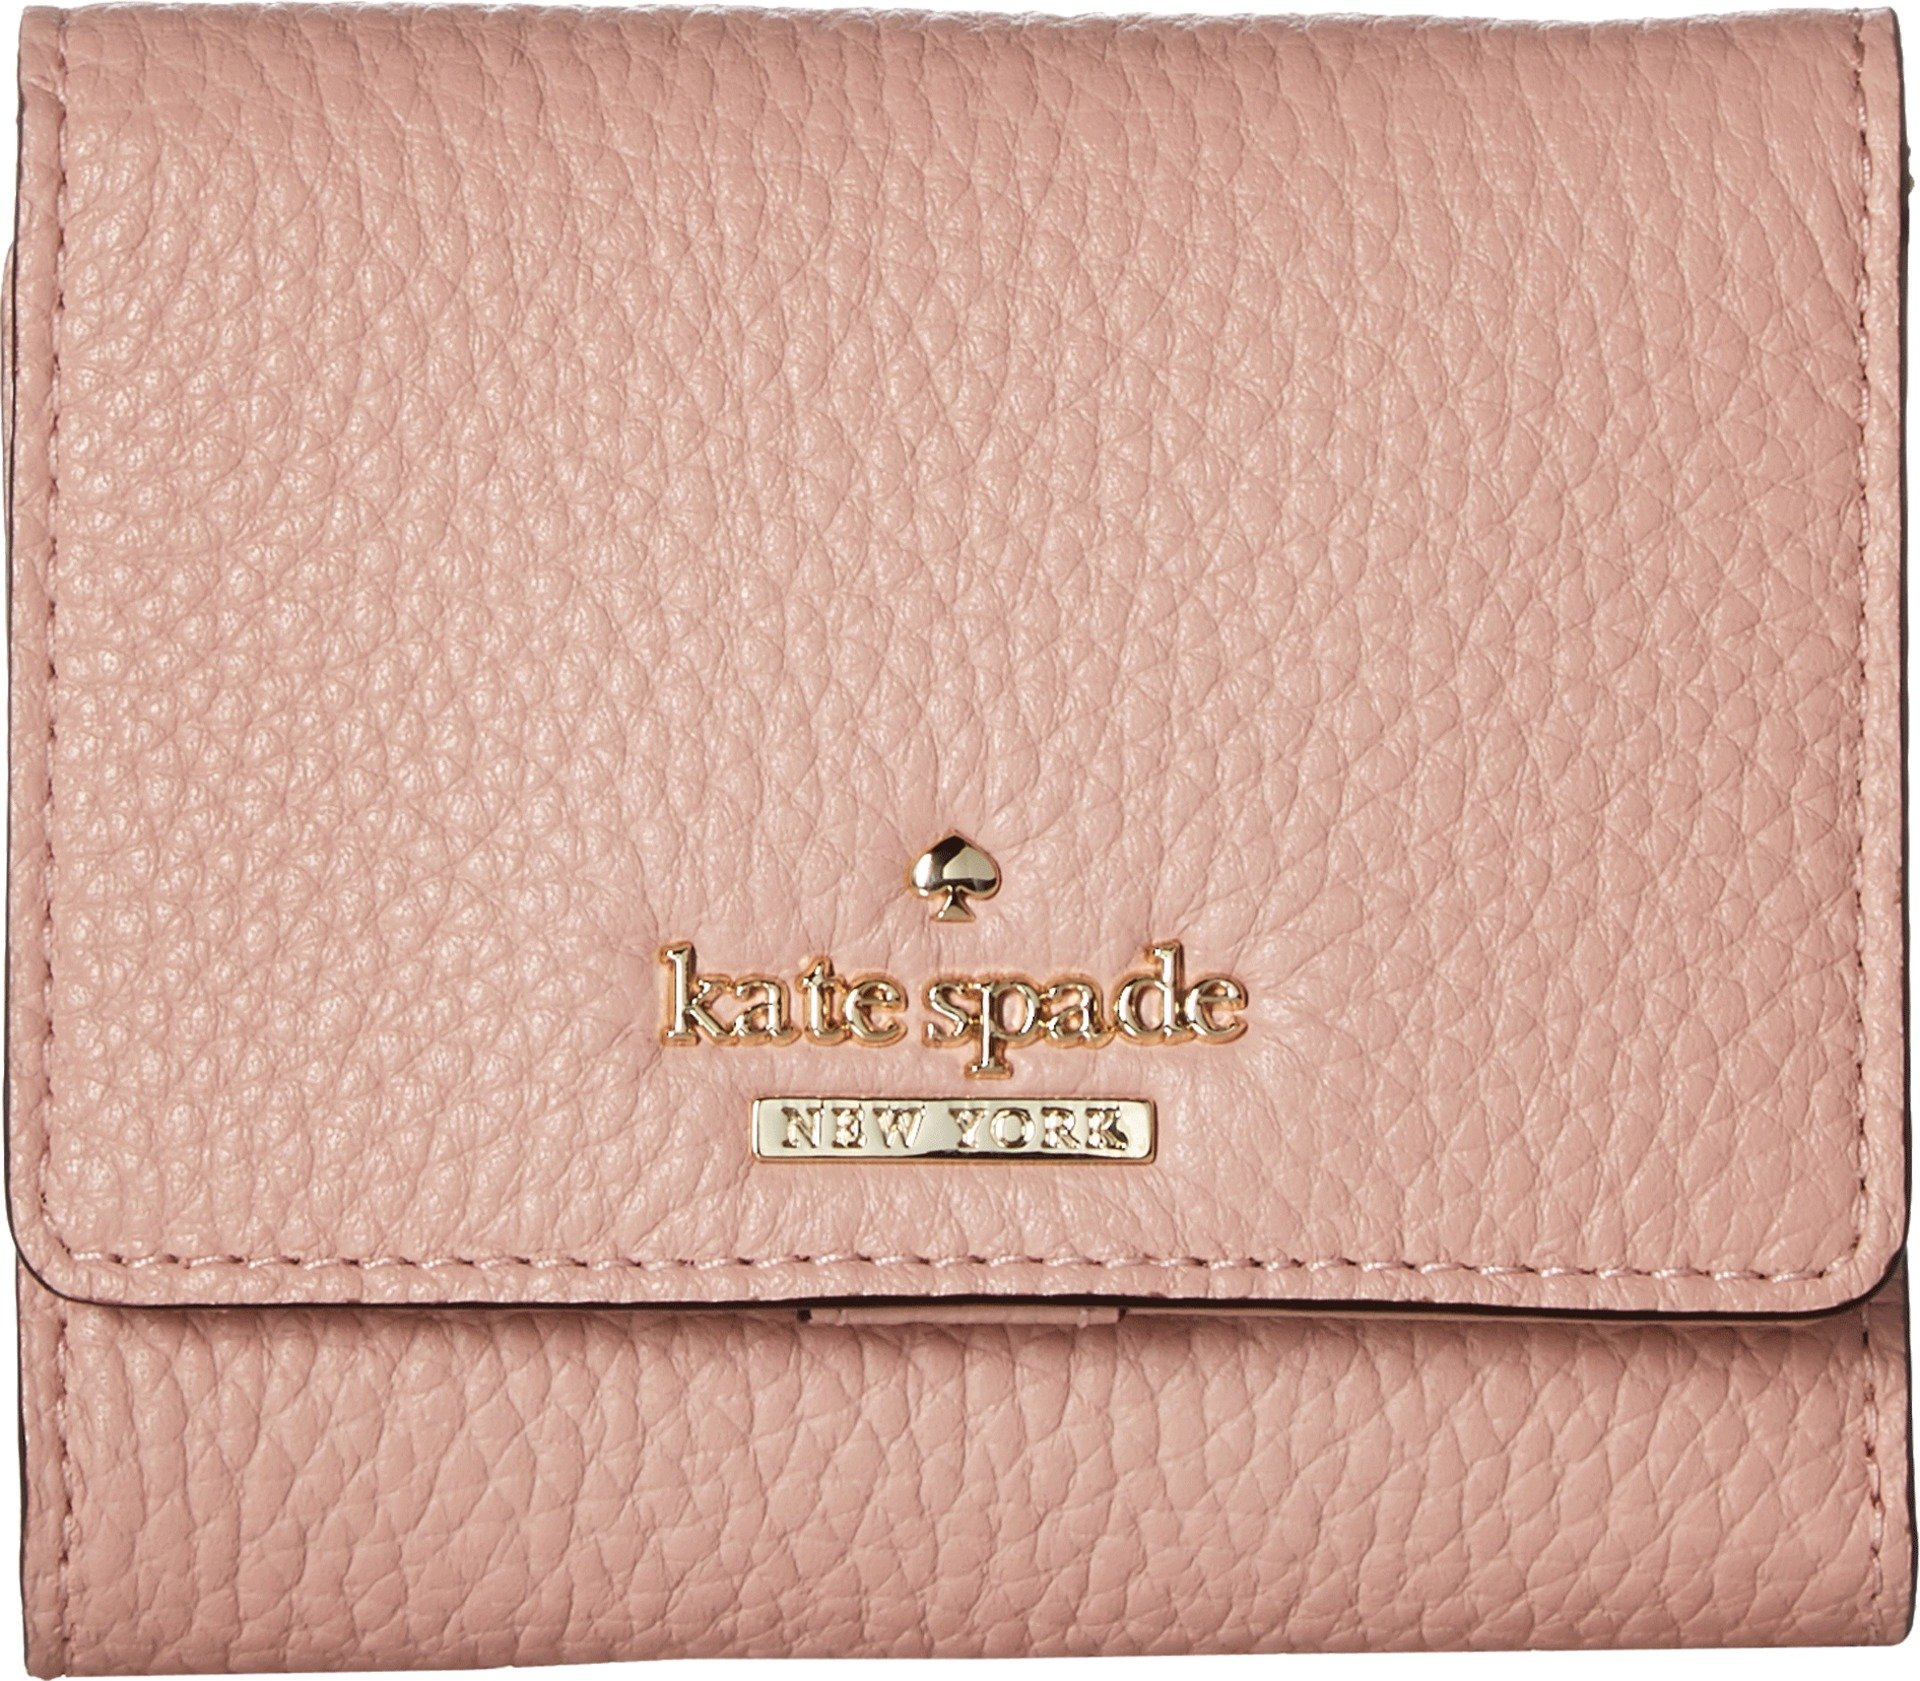 Kate Spade New York Women's Jackson Street Jada Wallet, Rosy Cheeks, One Size by Kate Spade New York